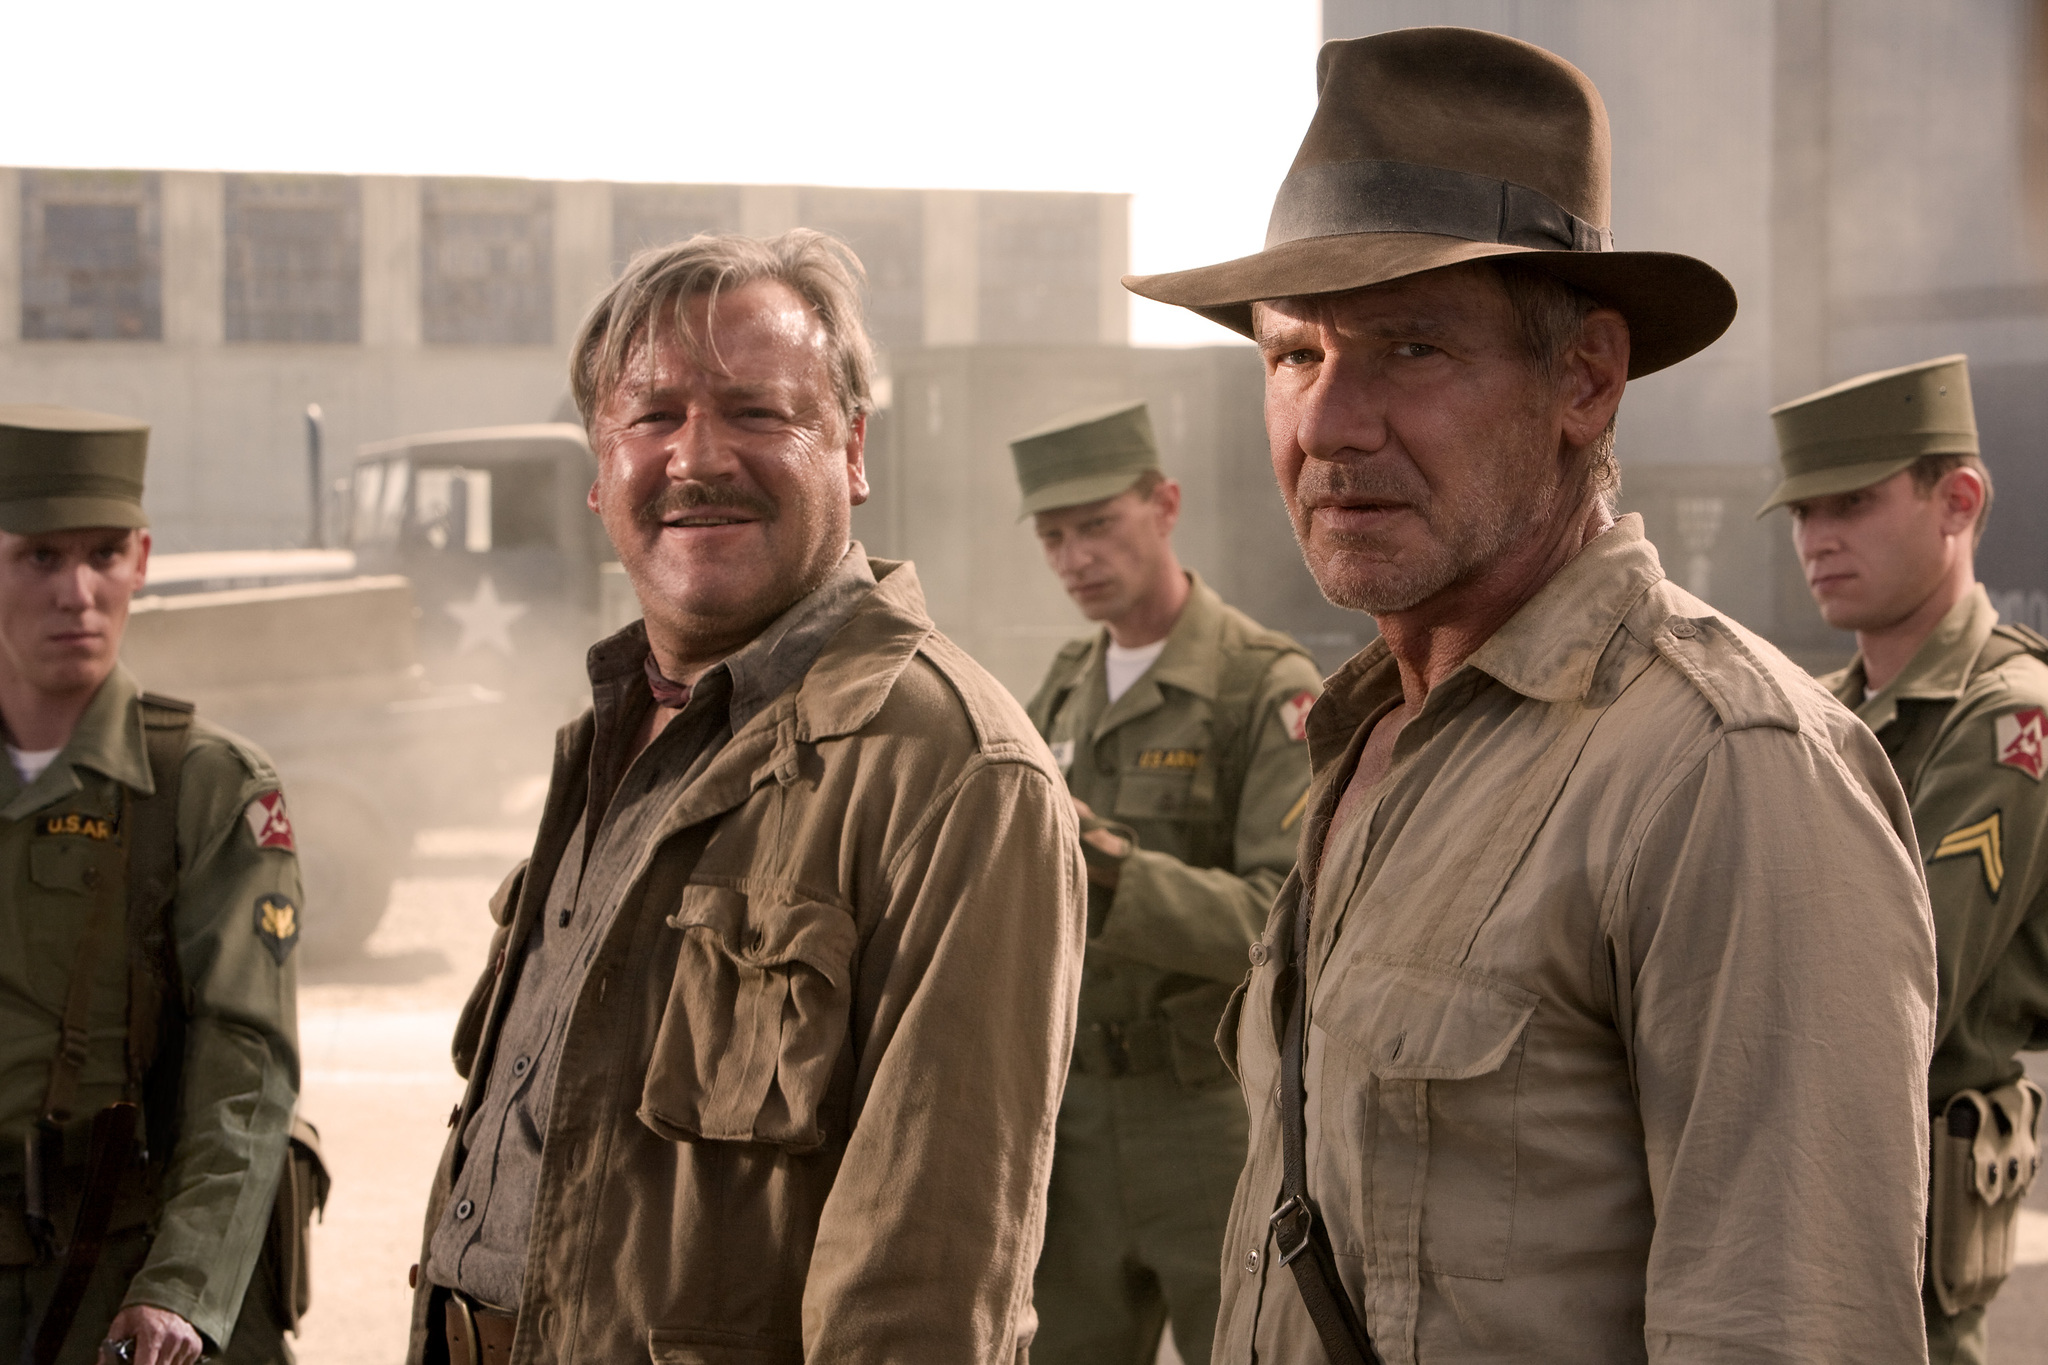 Harrison Ford and Ray Winstone in Indiana Jones and the Kingdom of the Crystal Skull (2008)